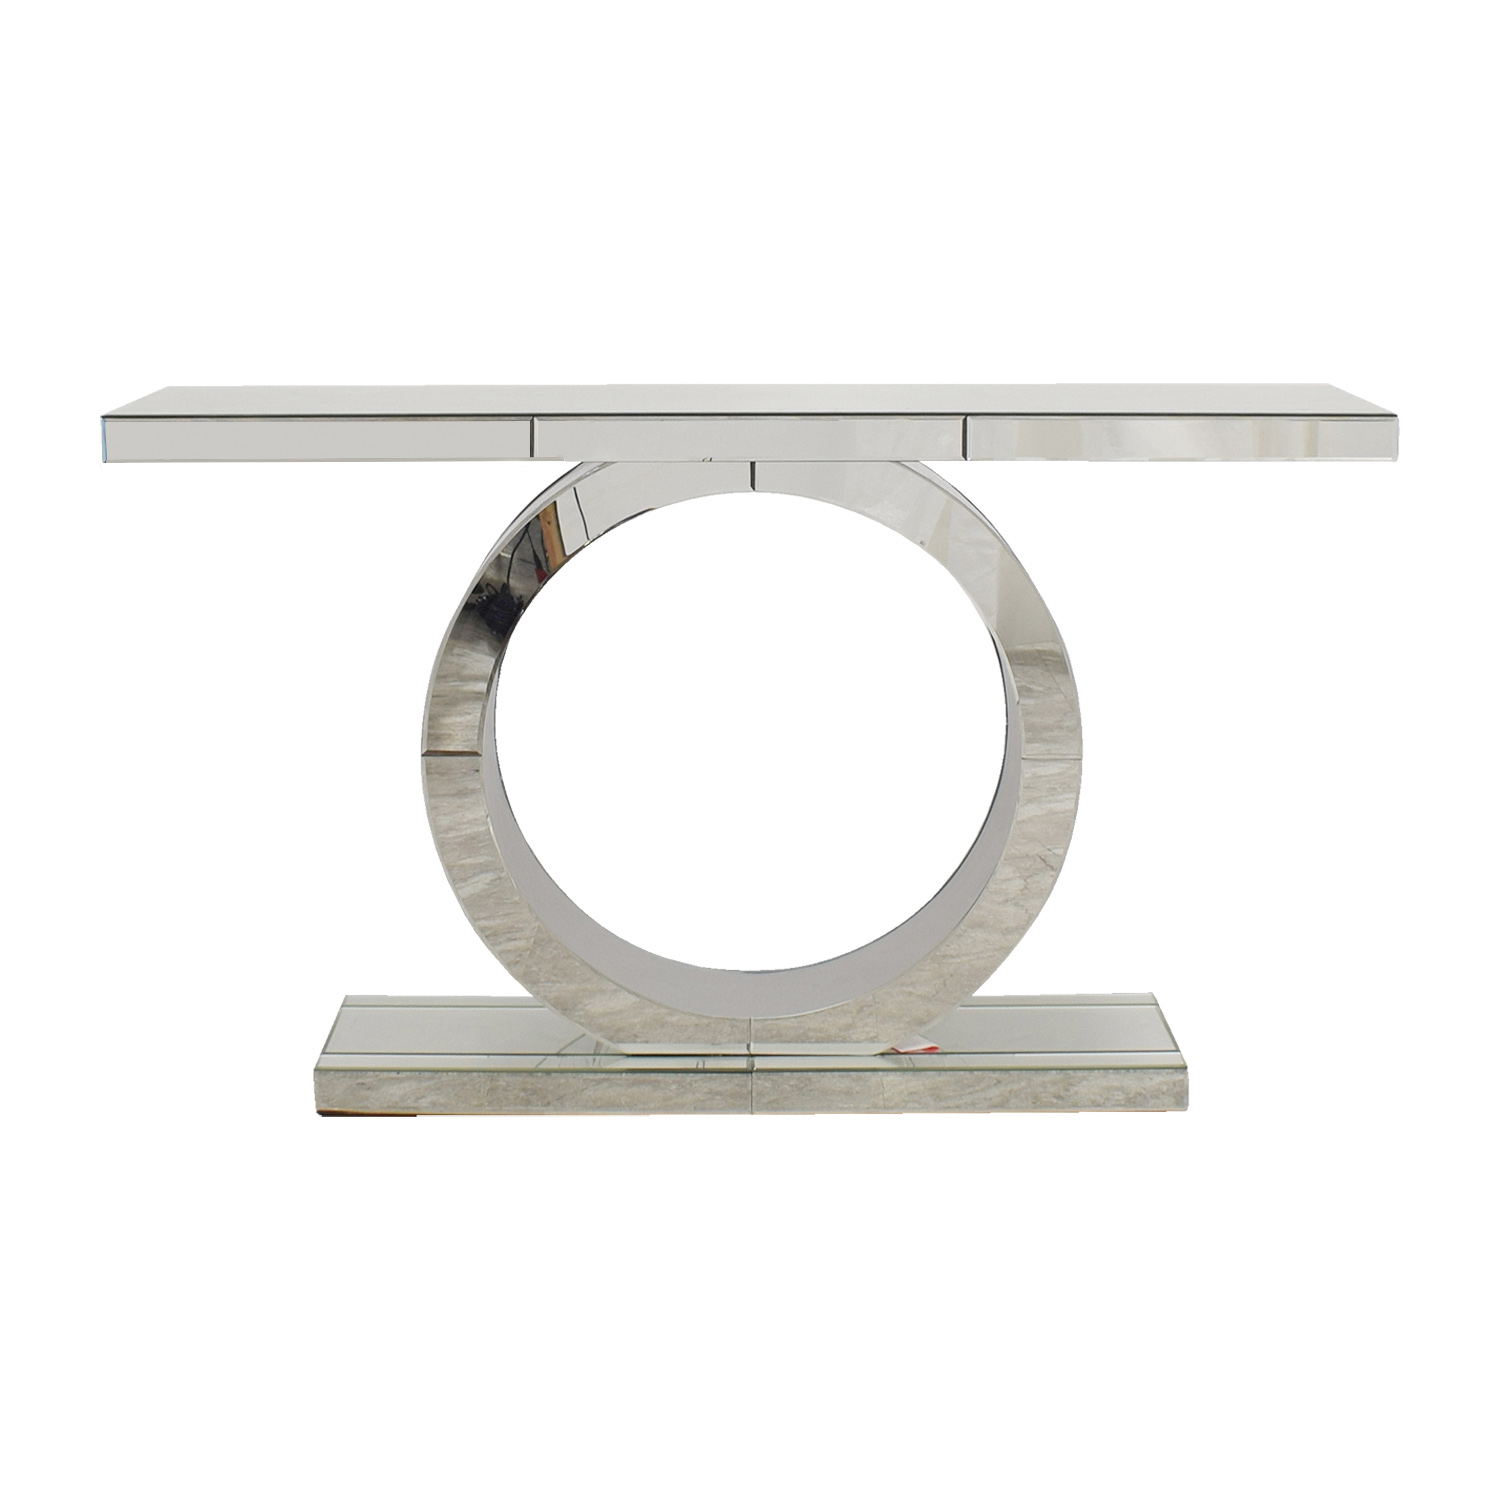 American Signature American Signature Olympia Mirrored Sofa Table price